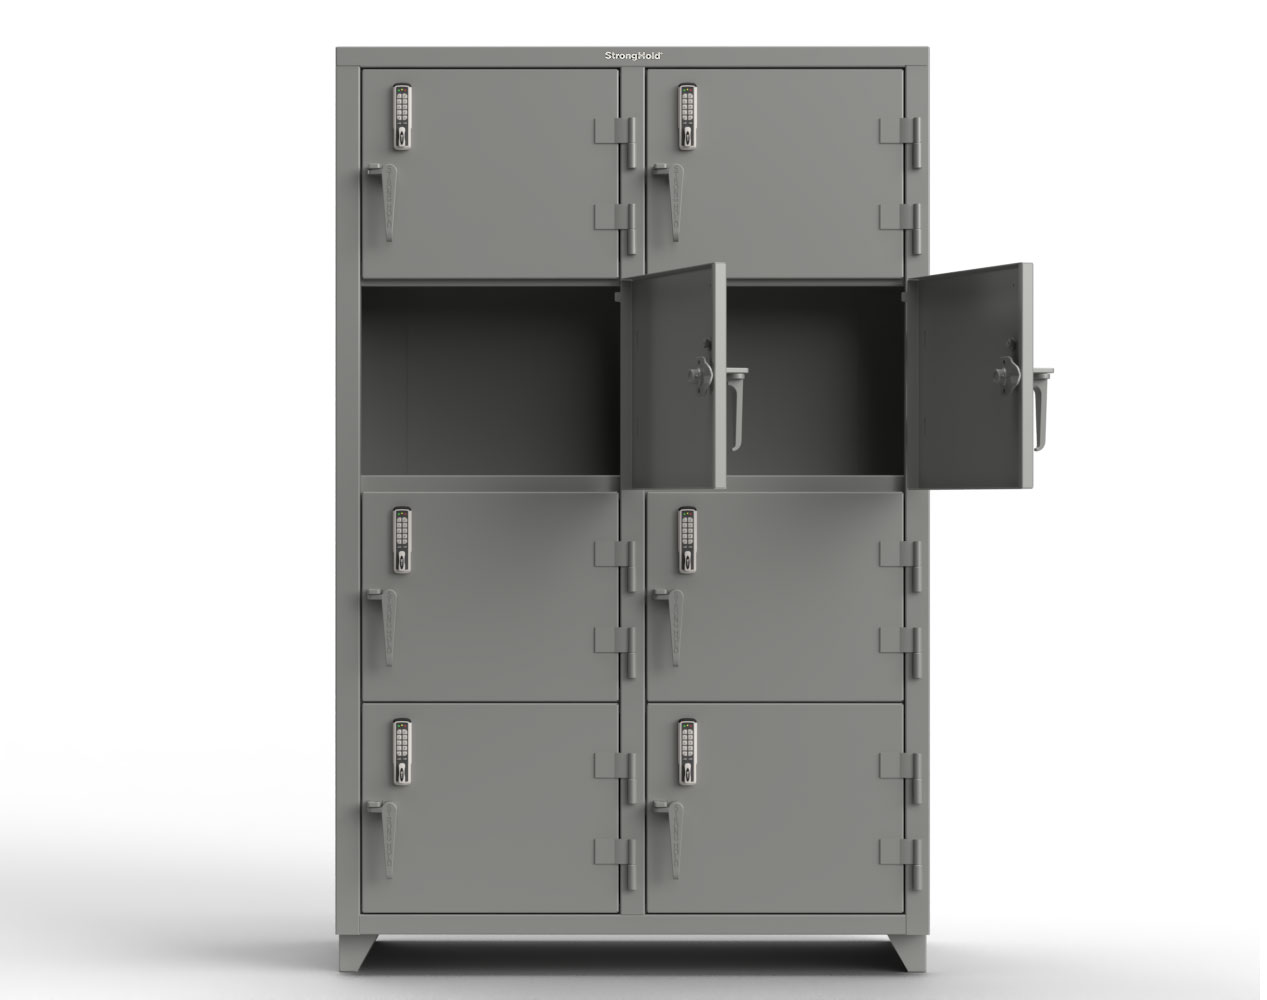 Extra Heavy Duty 14 GA 4-Tier Locker with Keyless Entry Lock, 8 Compartments – 48 in. W x 24 in. D x 75 in. H